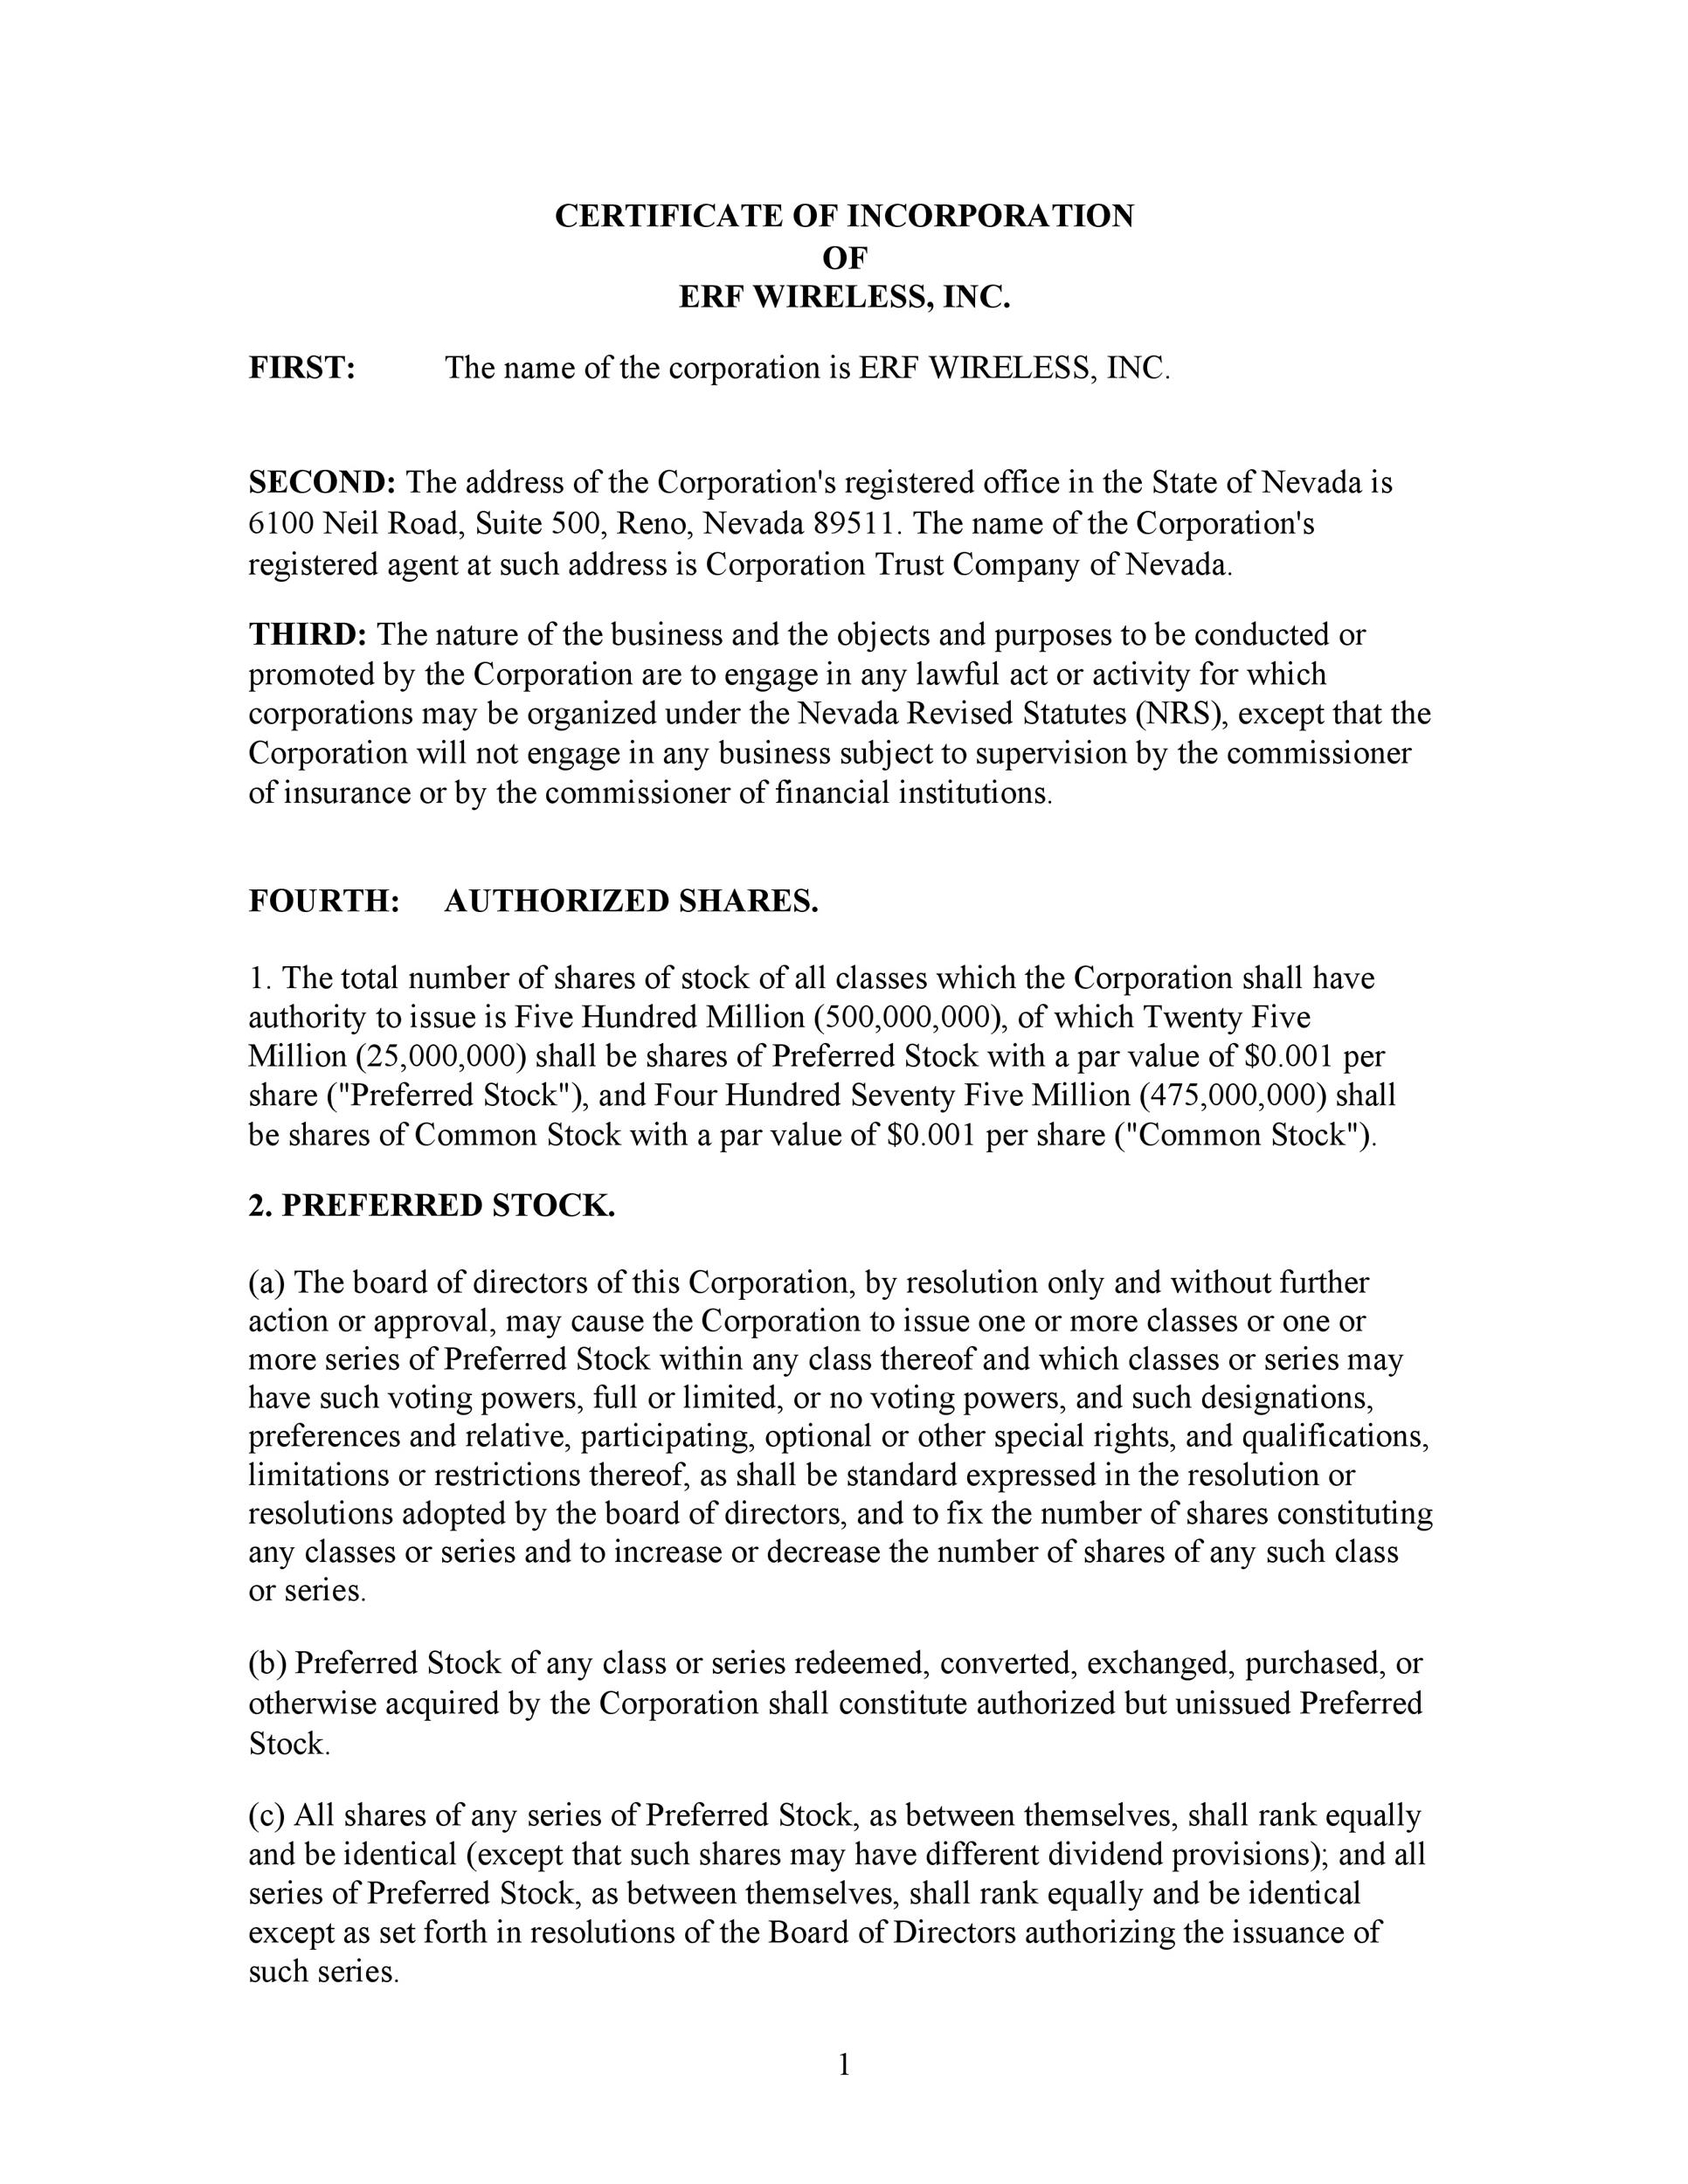 Articles Of Incorporation Template Colbro